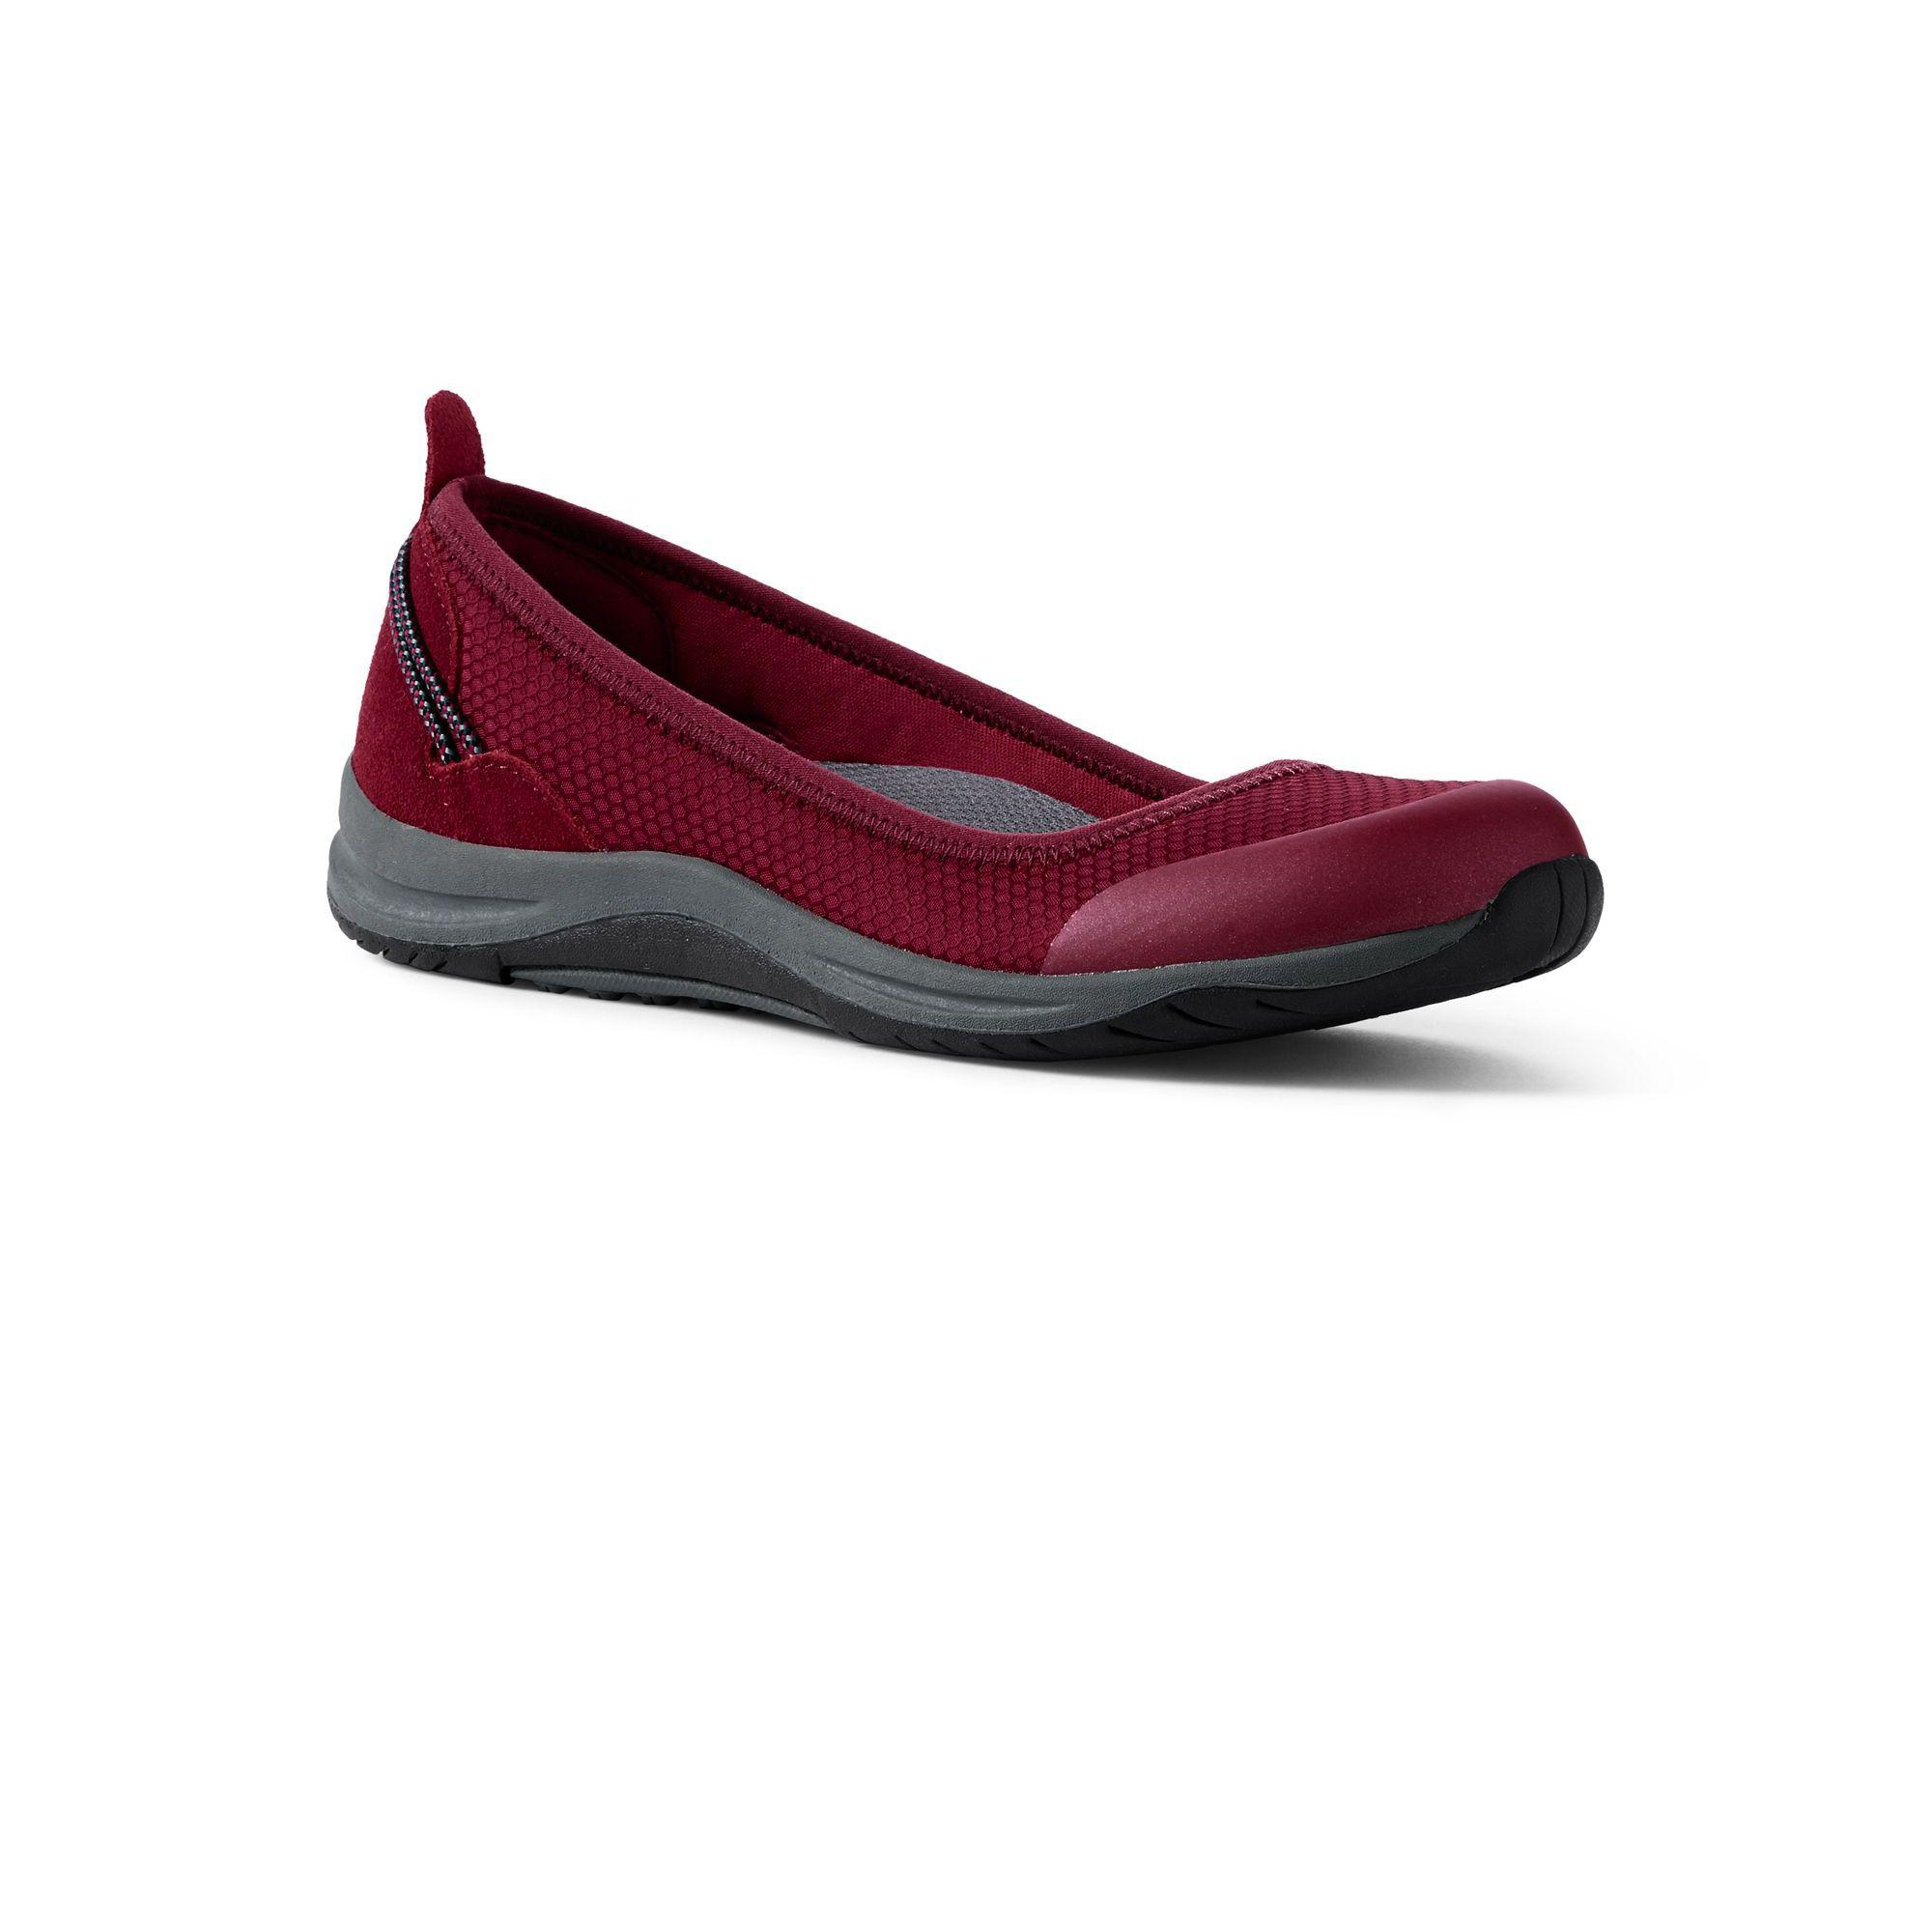 pictures cheap find great Red wide comfort ballet pumps wholesale price sale online OQQebNnL